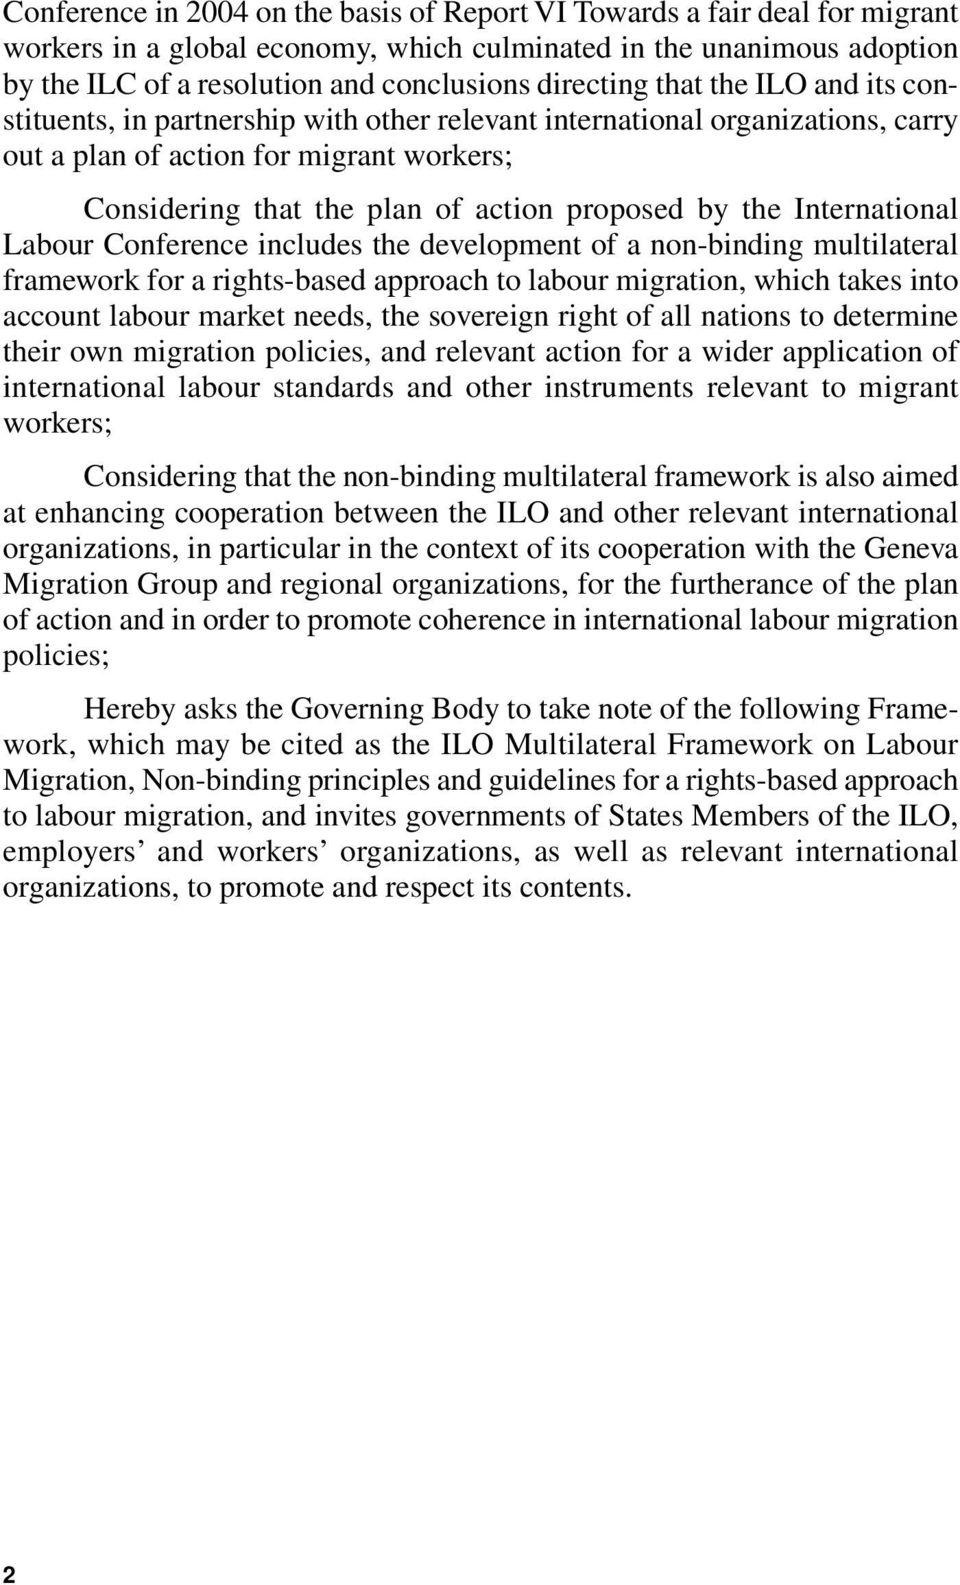 proposed by the International Labour Conference includes the development of a non-binding multilateral framework for a rights-based approach to labour migration, which takes into account labour